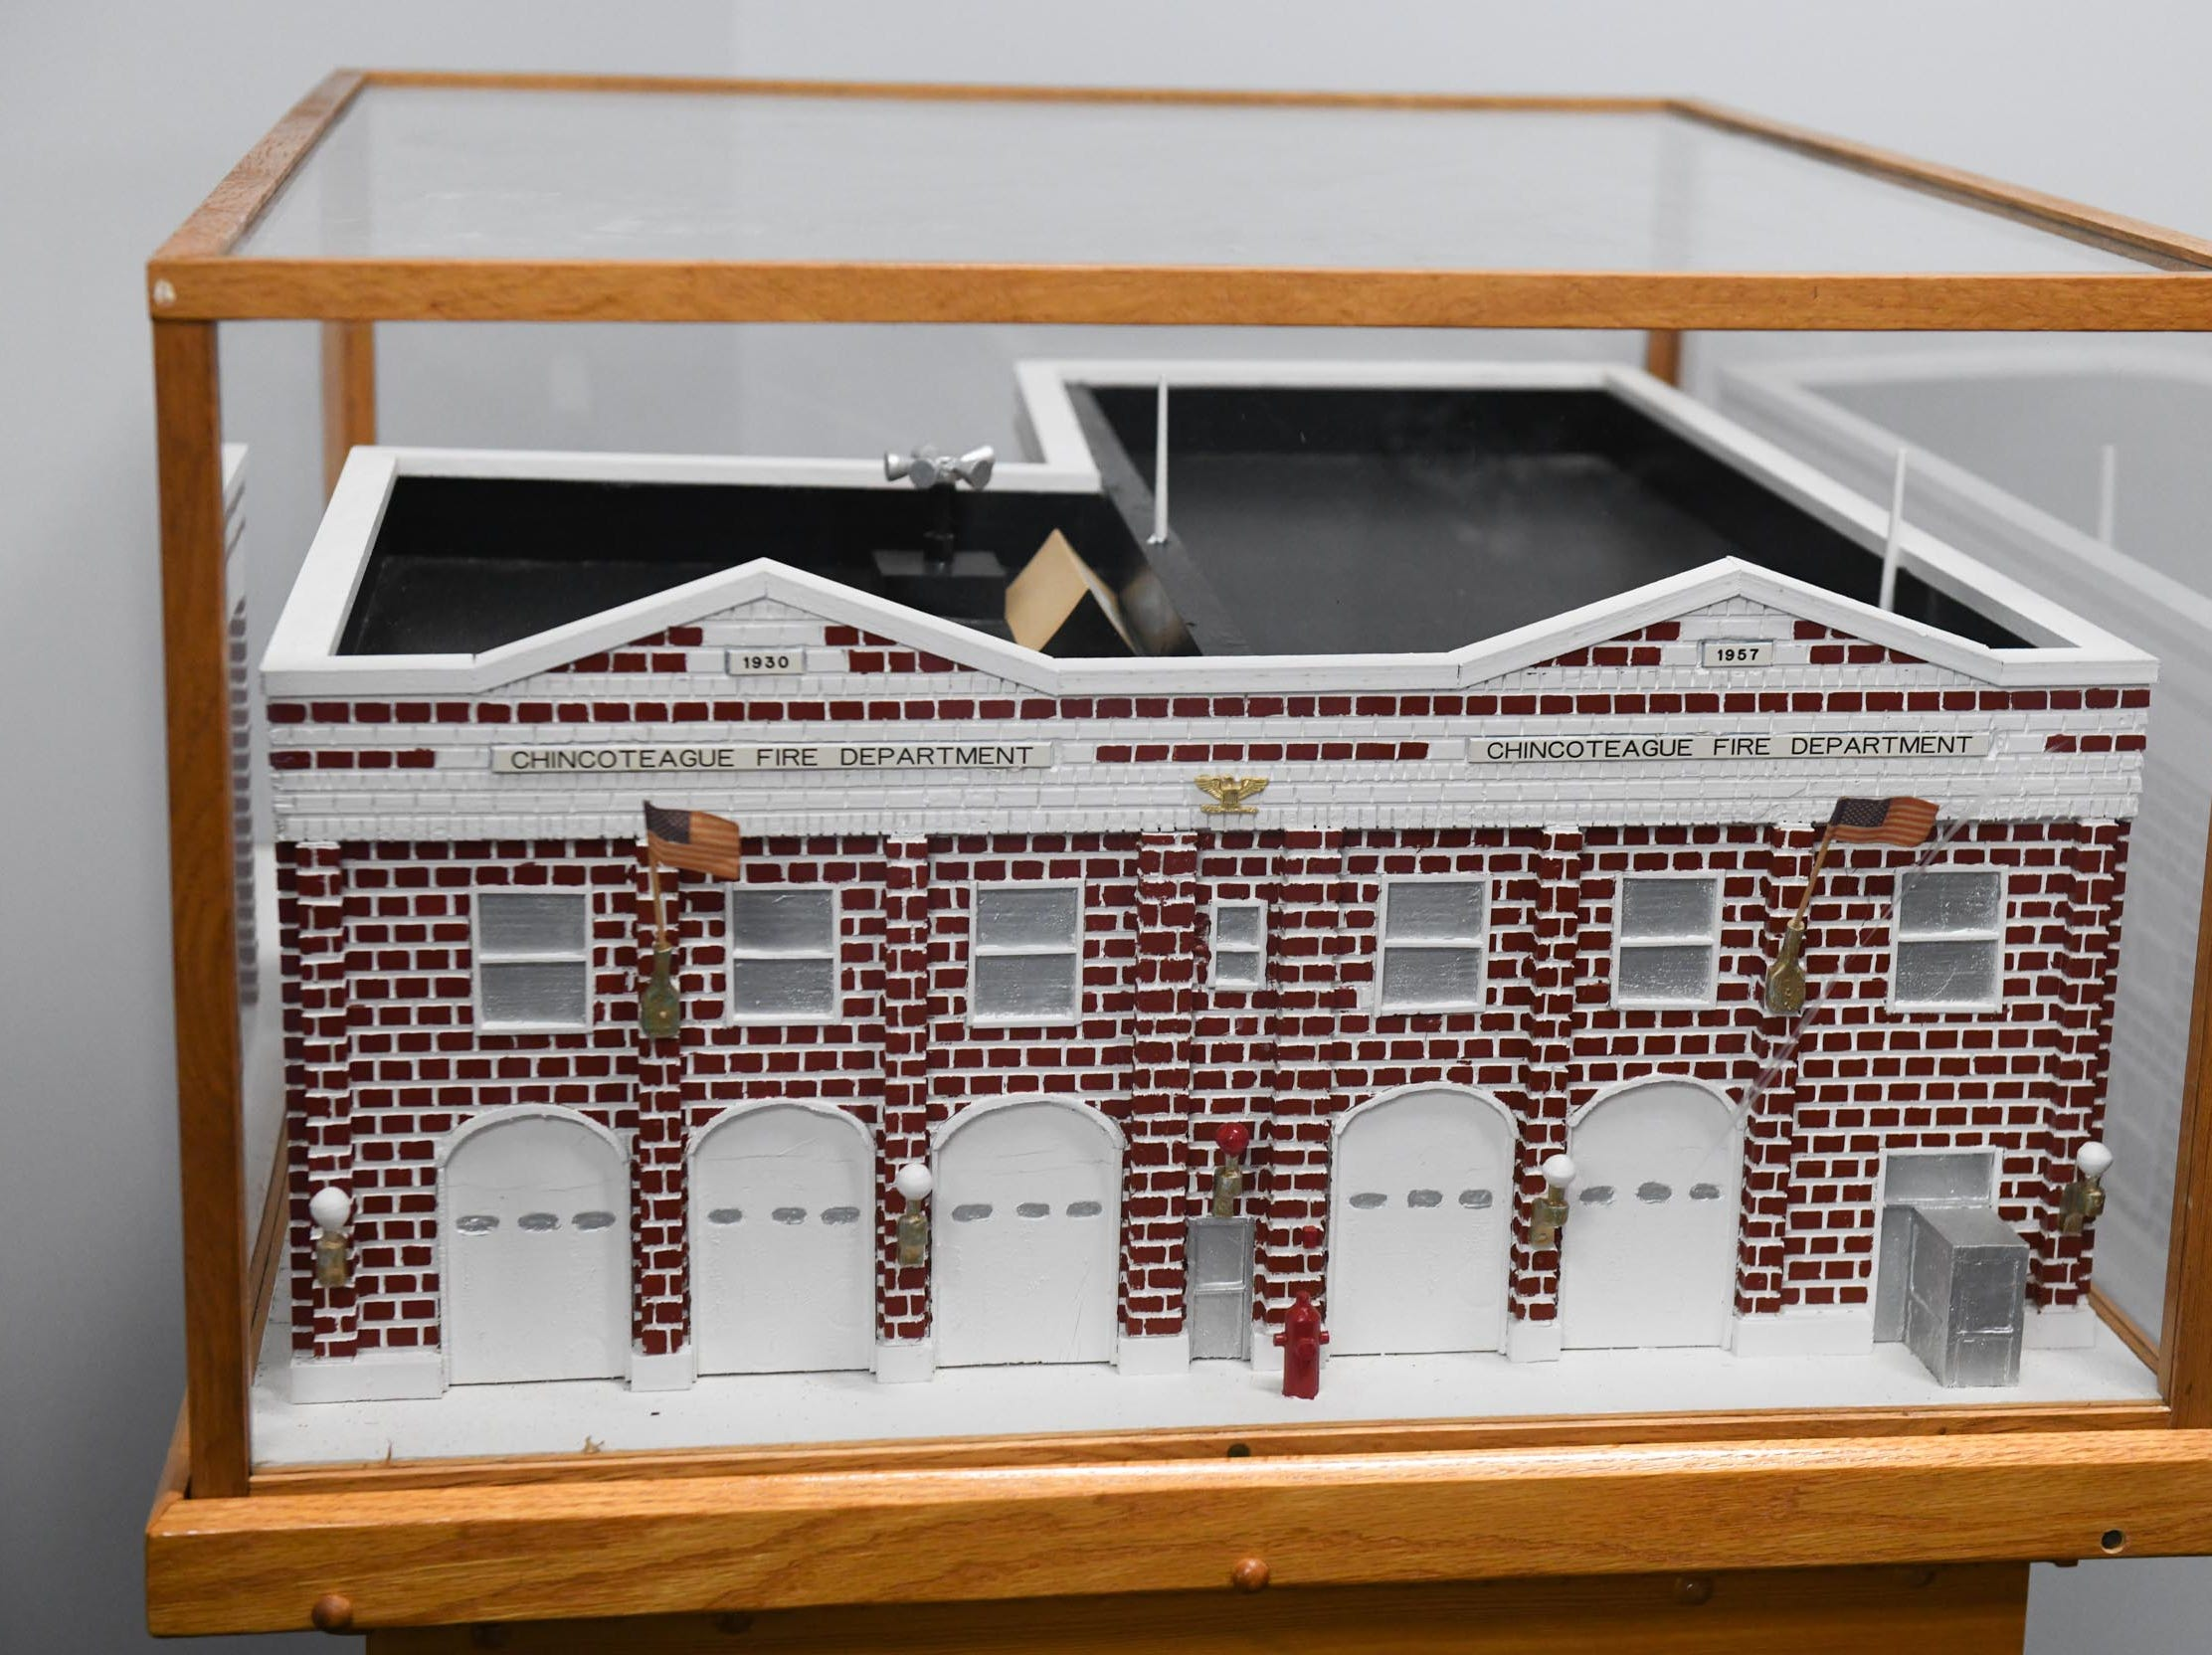 A model replica of the old fire department will have its forever home at the new Chincoteague Volunteer Fire Department at 5175 Chicken City Road.